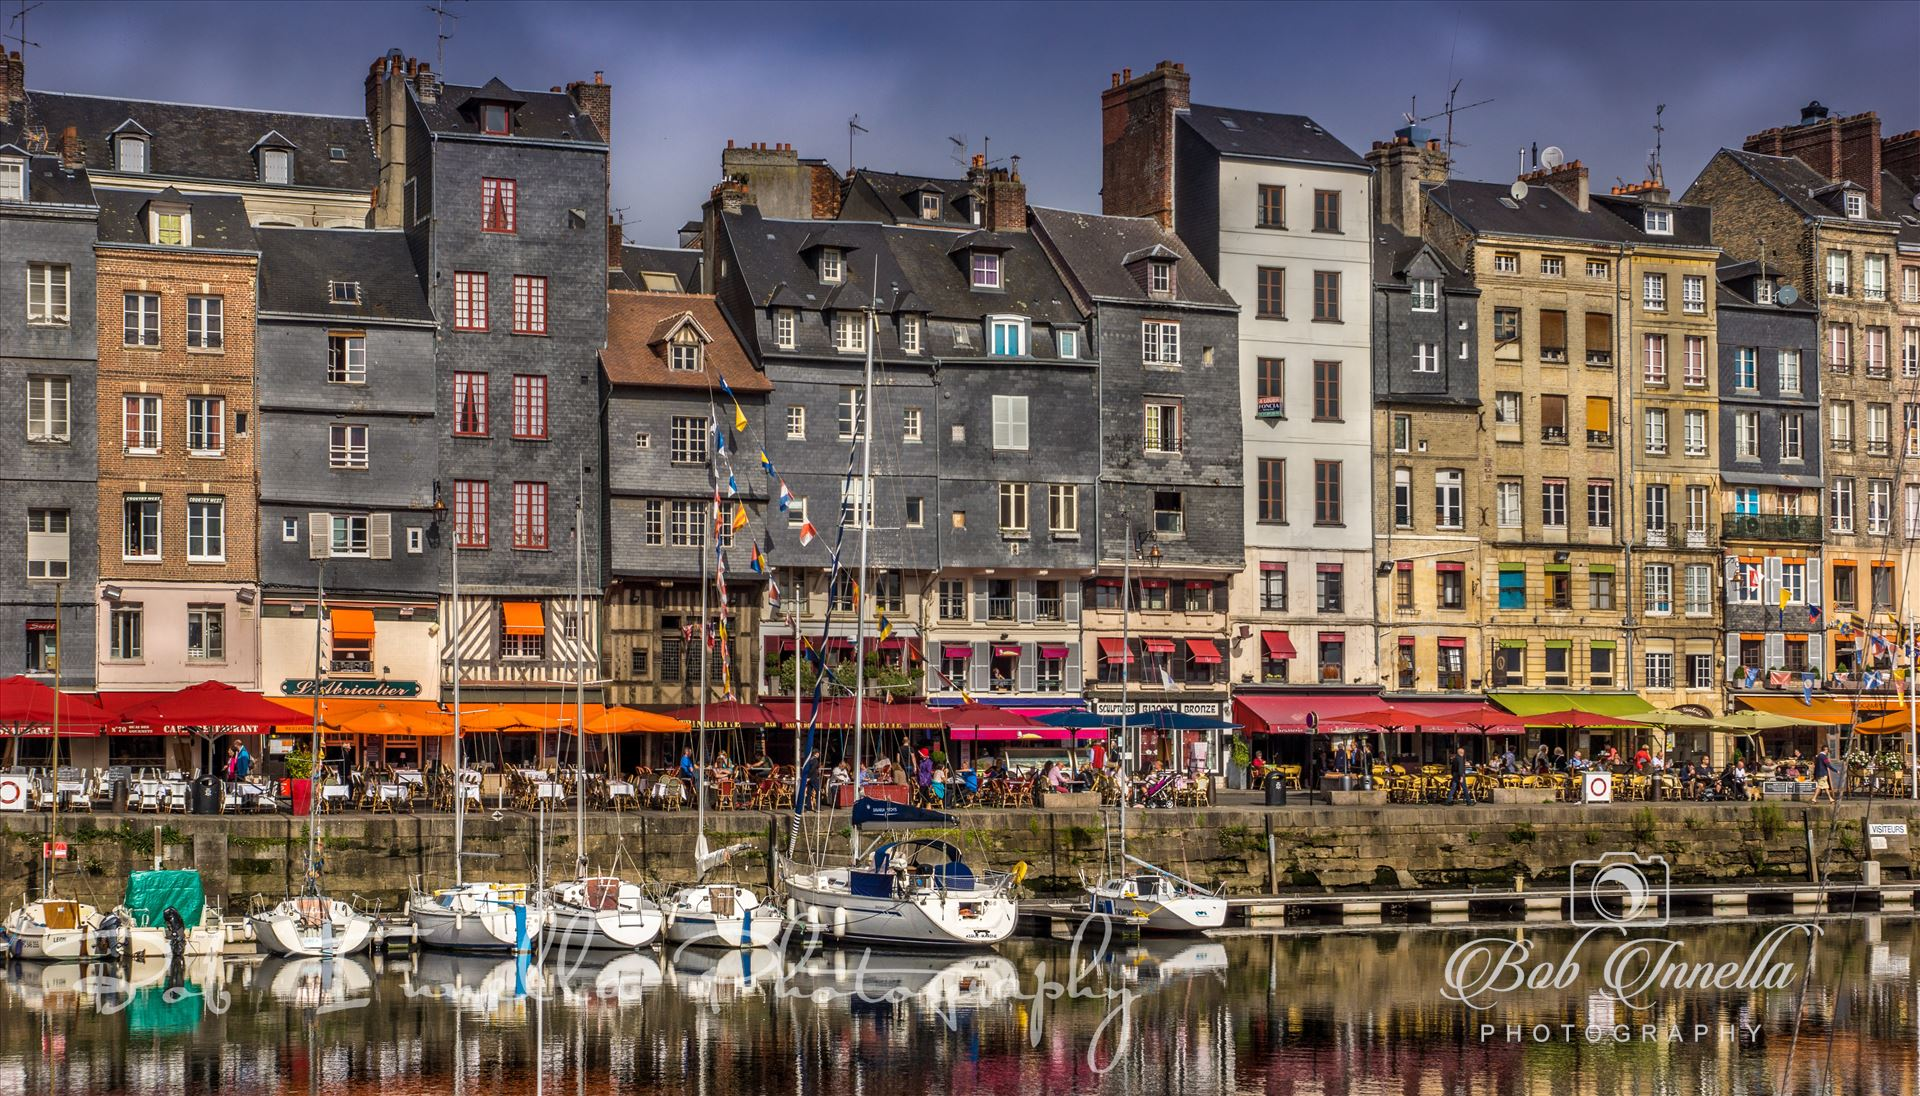 Buildings At Honfleur Harbour, France - Harbor in Honfleur France 2014 by Buckmaster